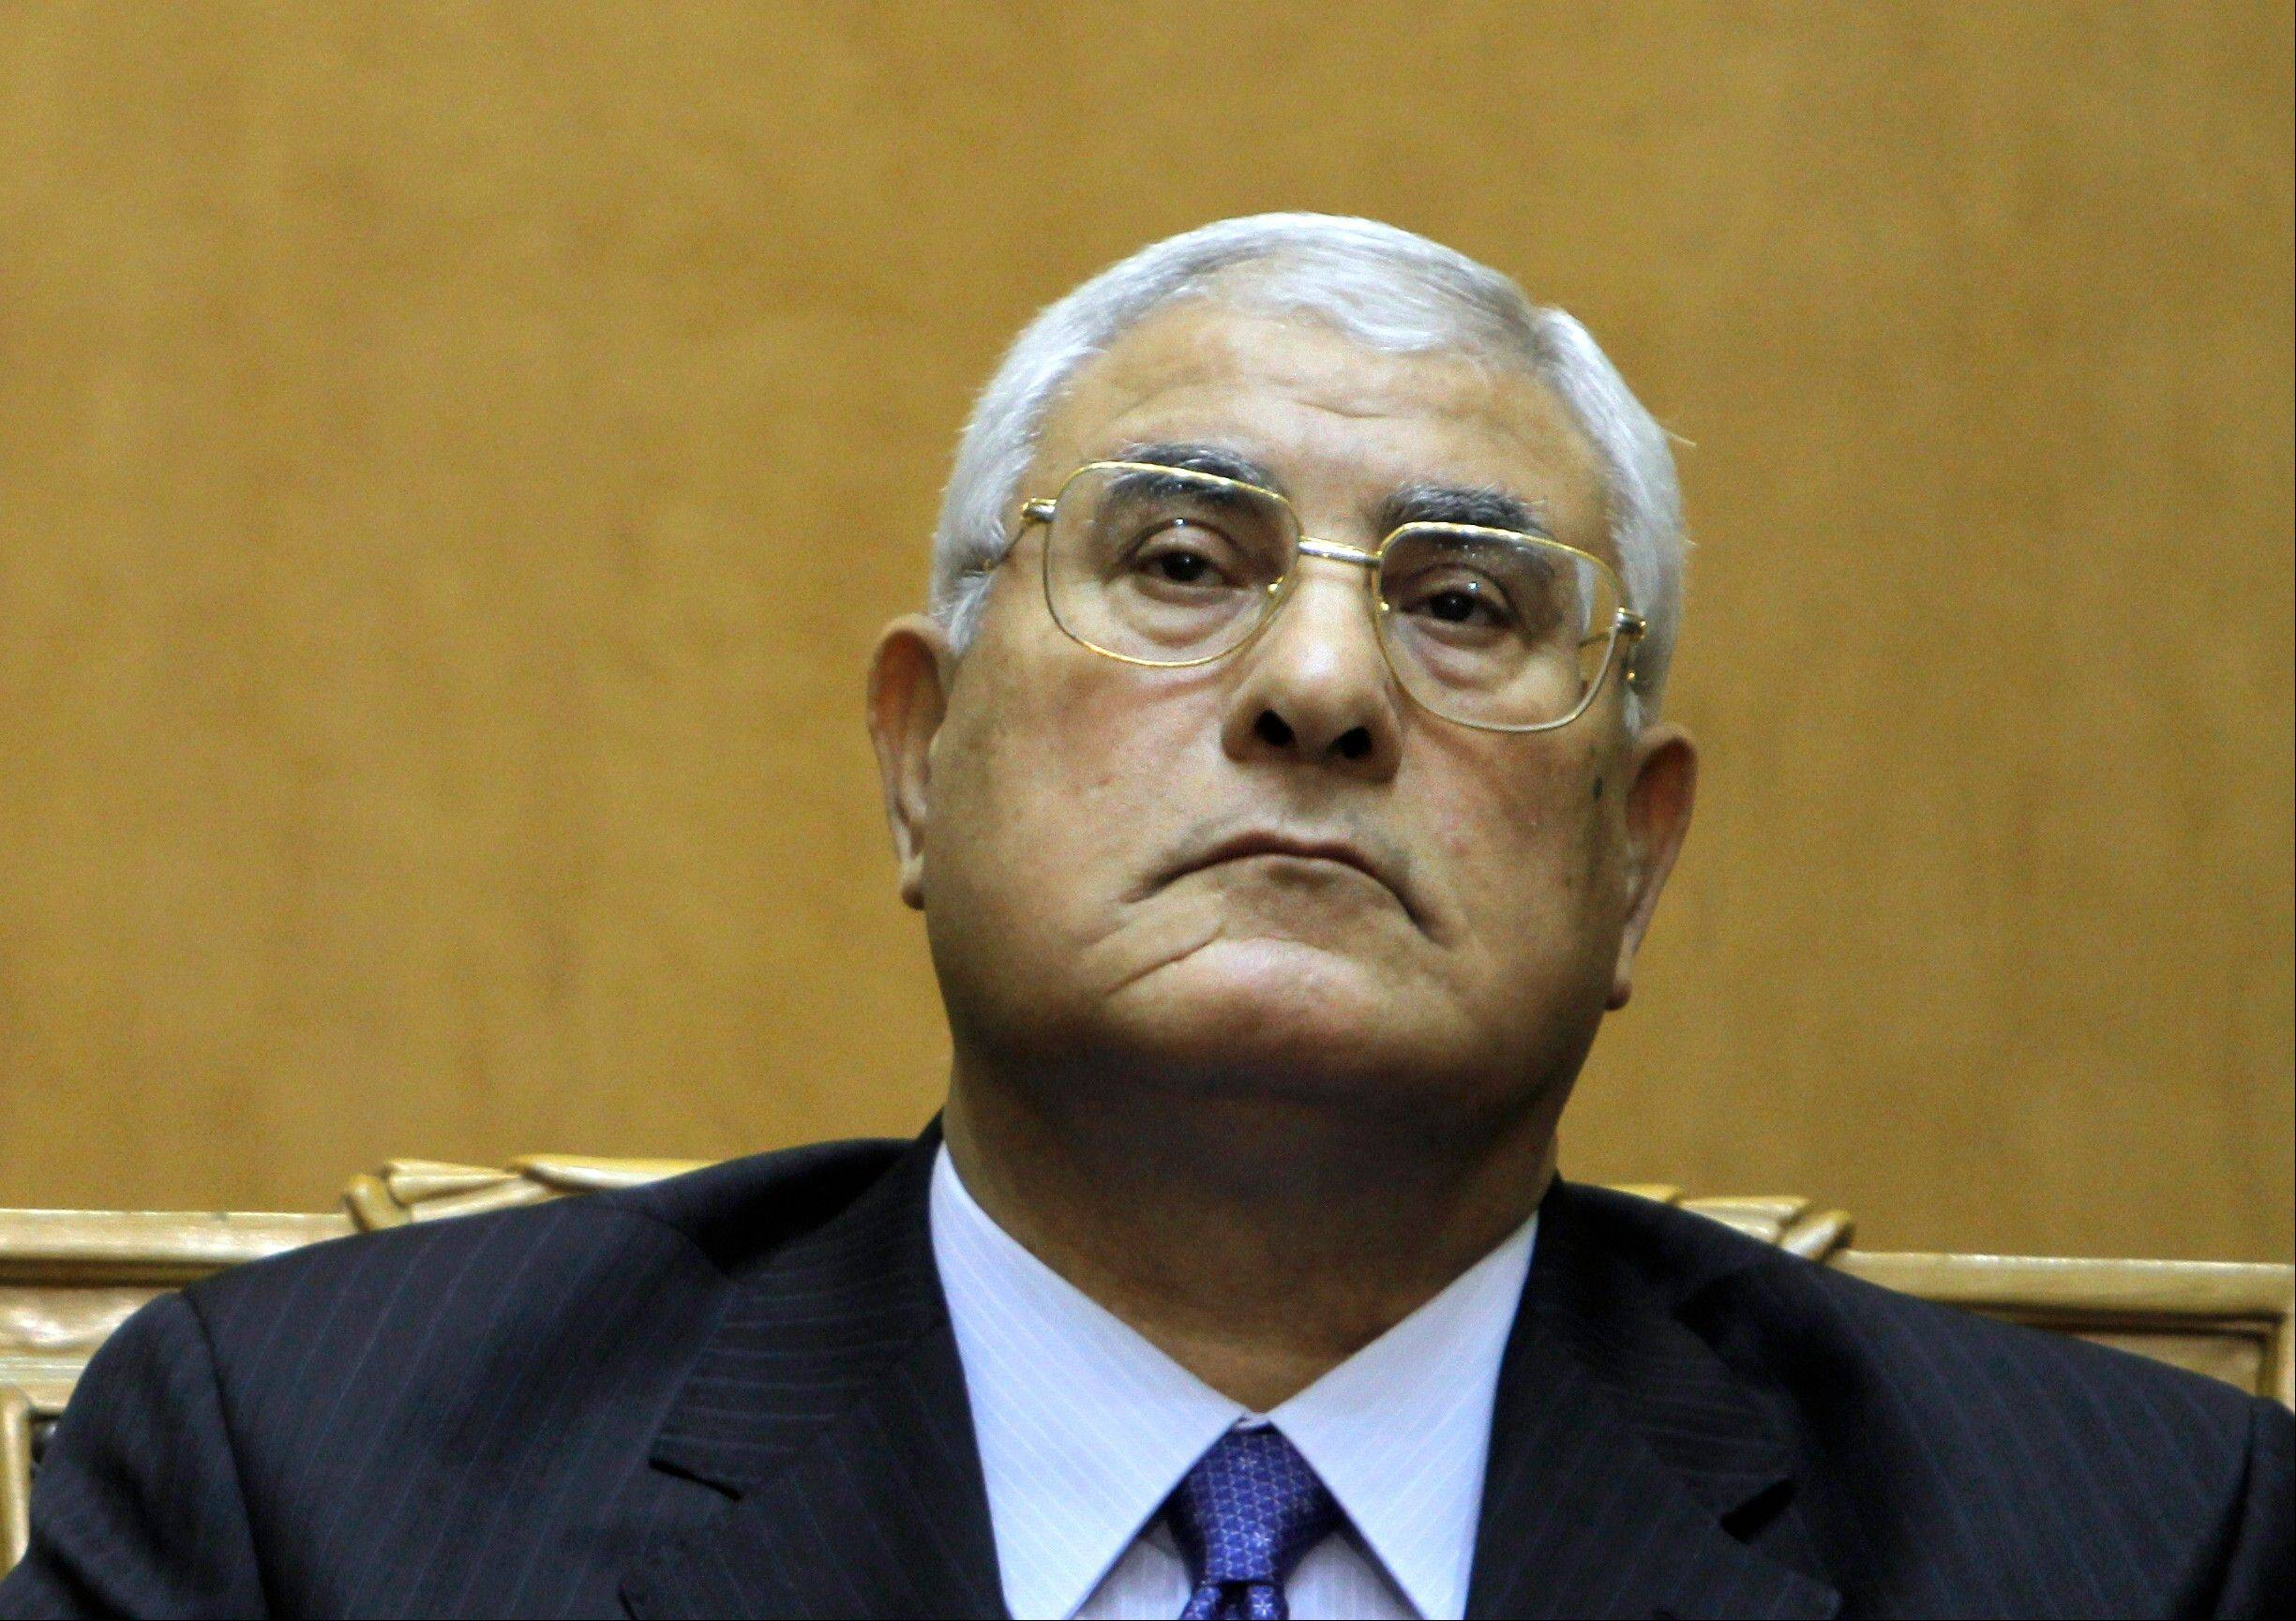 In this file photo taken Thursday, July 4, 2013, Egypt's chief justice Adly Mansour listens to a speech during his swearing in as interim president. Interim president Mansour held talks Saturday, July 6, 2013, with the army chief and interior minister after an outburst of violence between supporters and opponents of ousted leader Mohammed Morsi that killed at least 36 people across the country and deepened the battle lines in the divided nation.